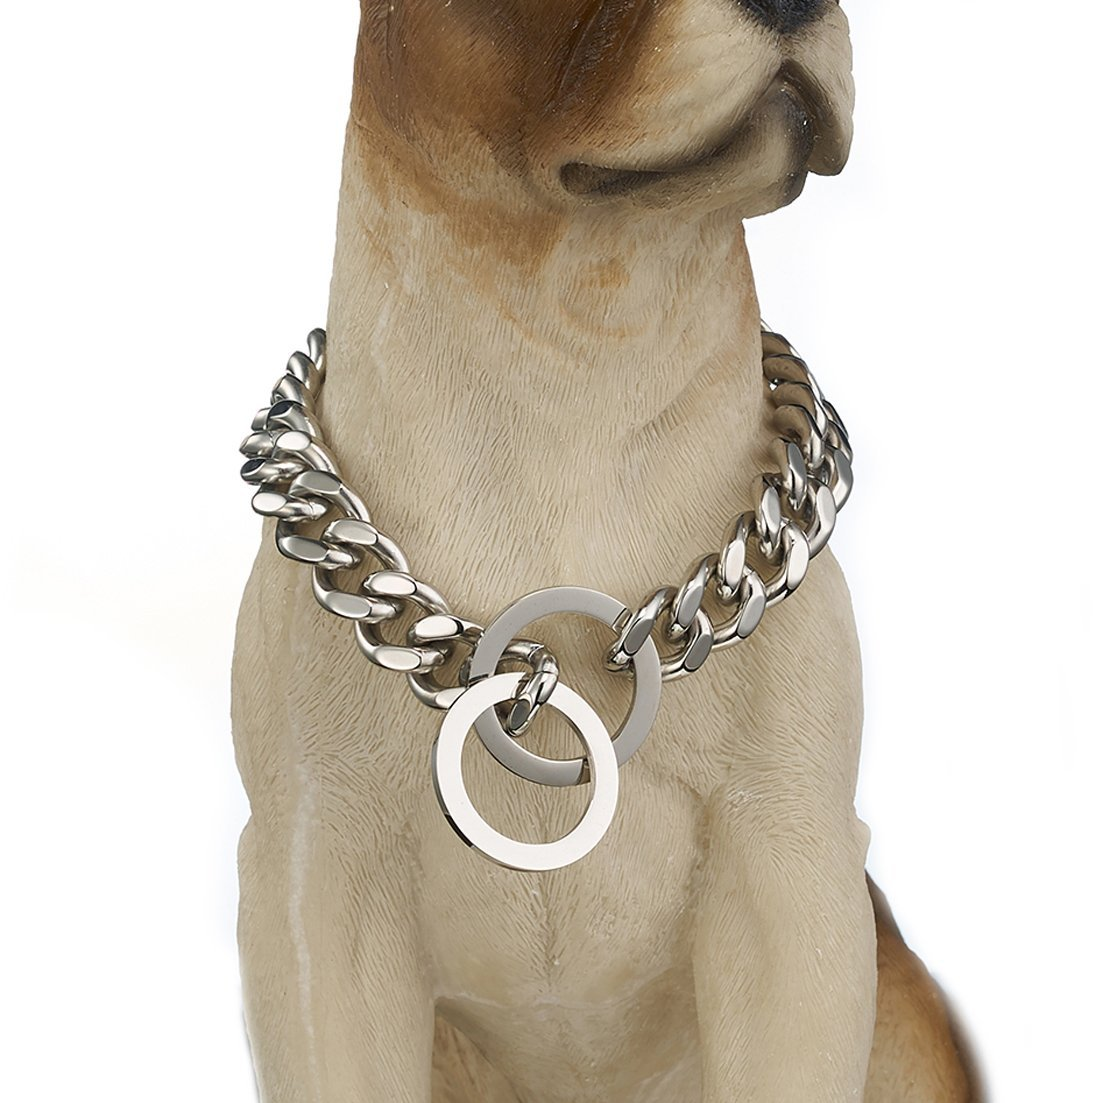 Granny Chic Strong Dog Collar Stainless Steel Pet Chain Necklace 12mm 15mm Width(15mm,16inches)